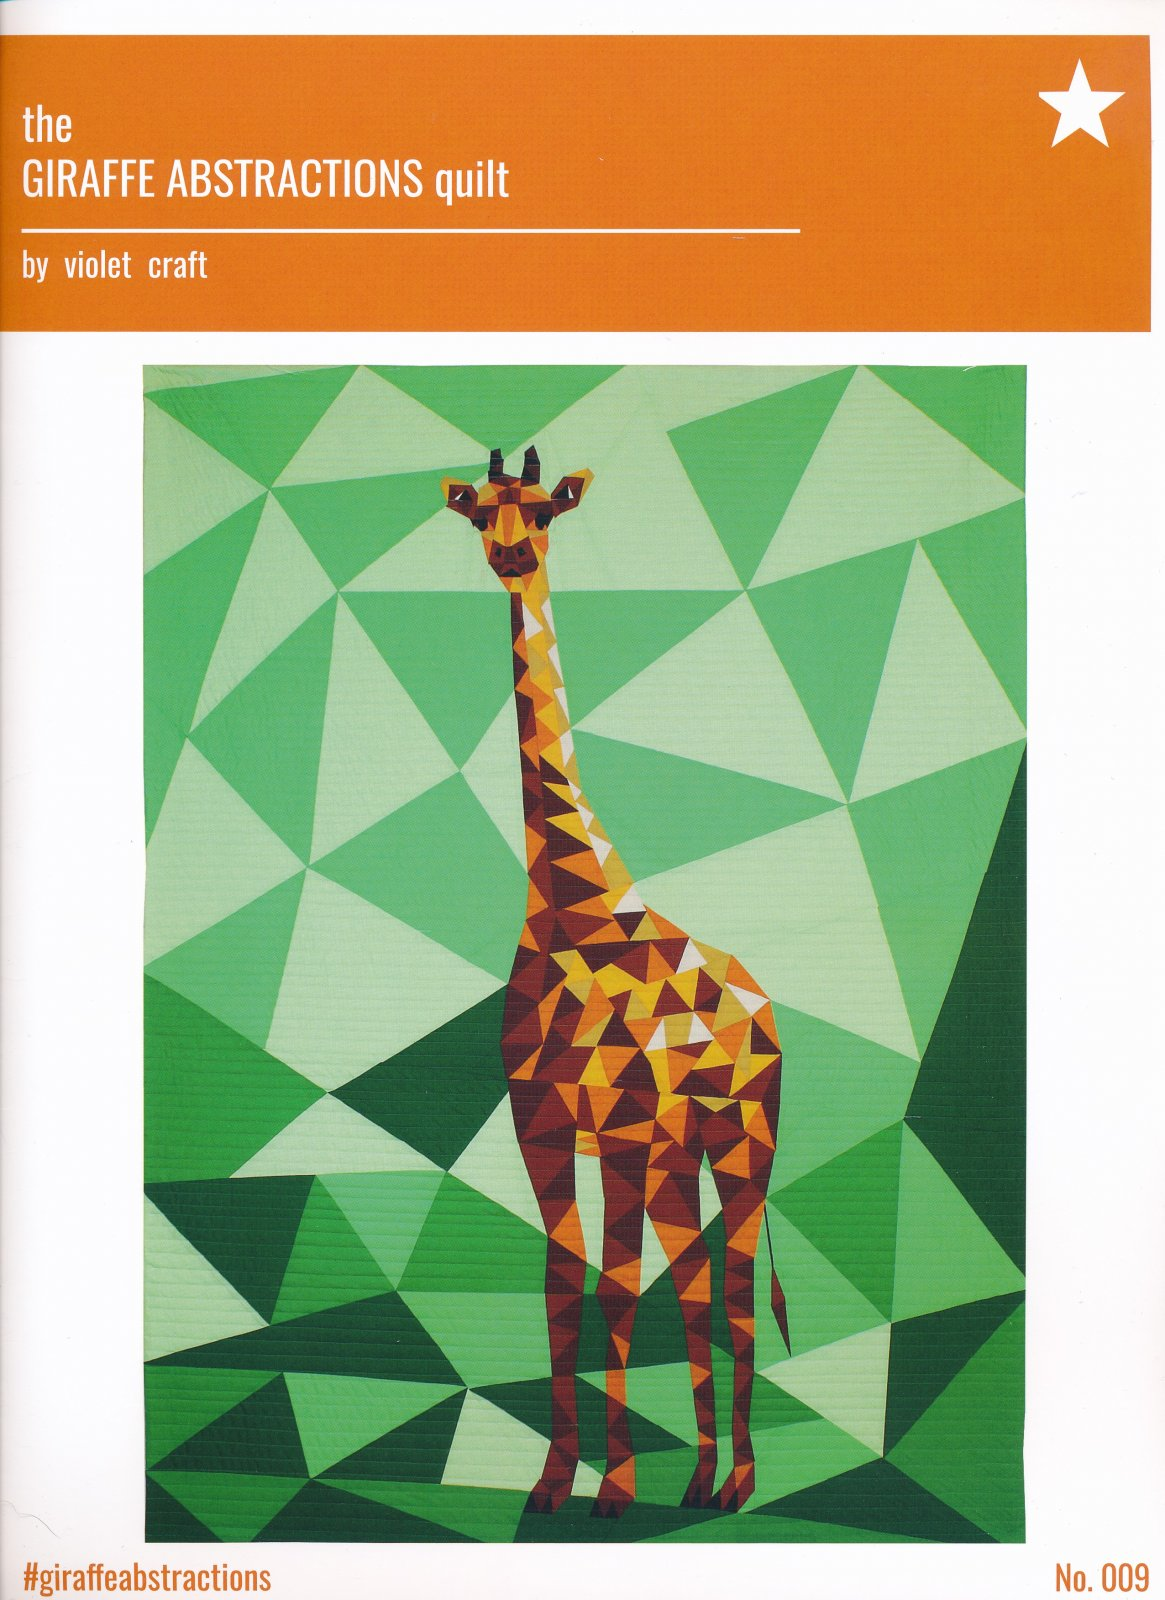 Jungle Abstractions Quilt Pattern: The Giraffe